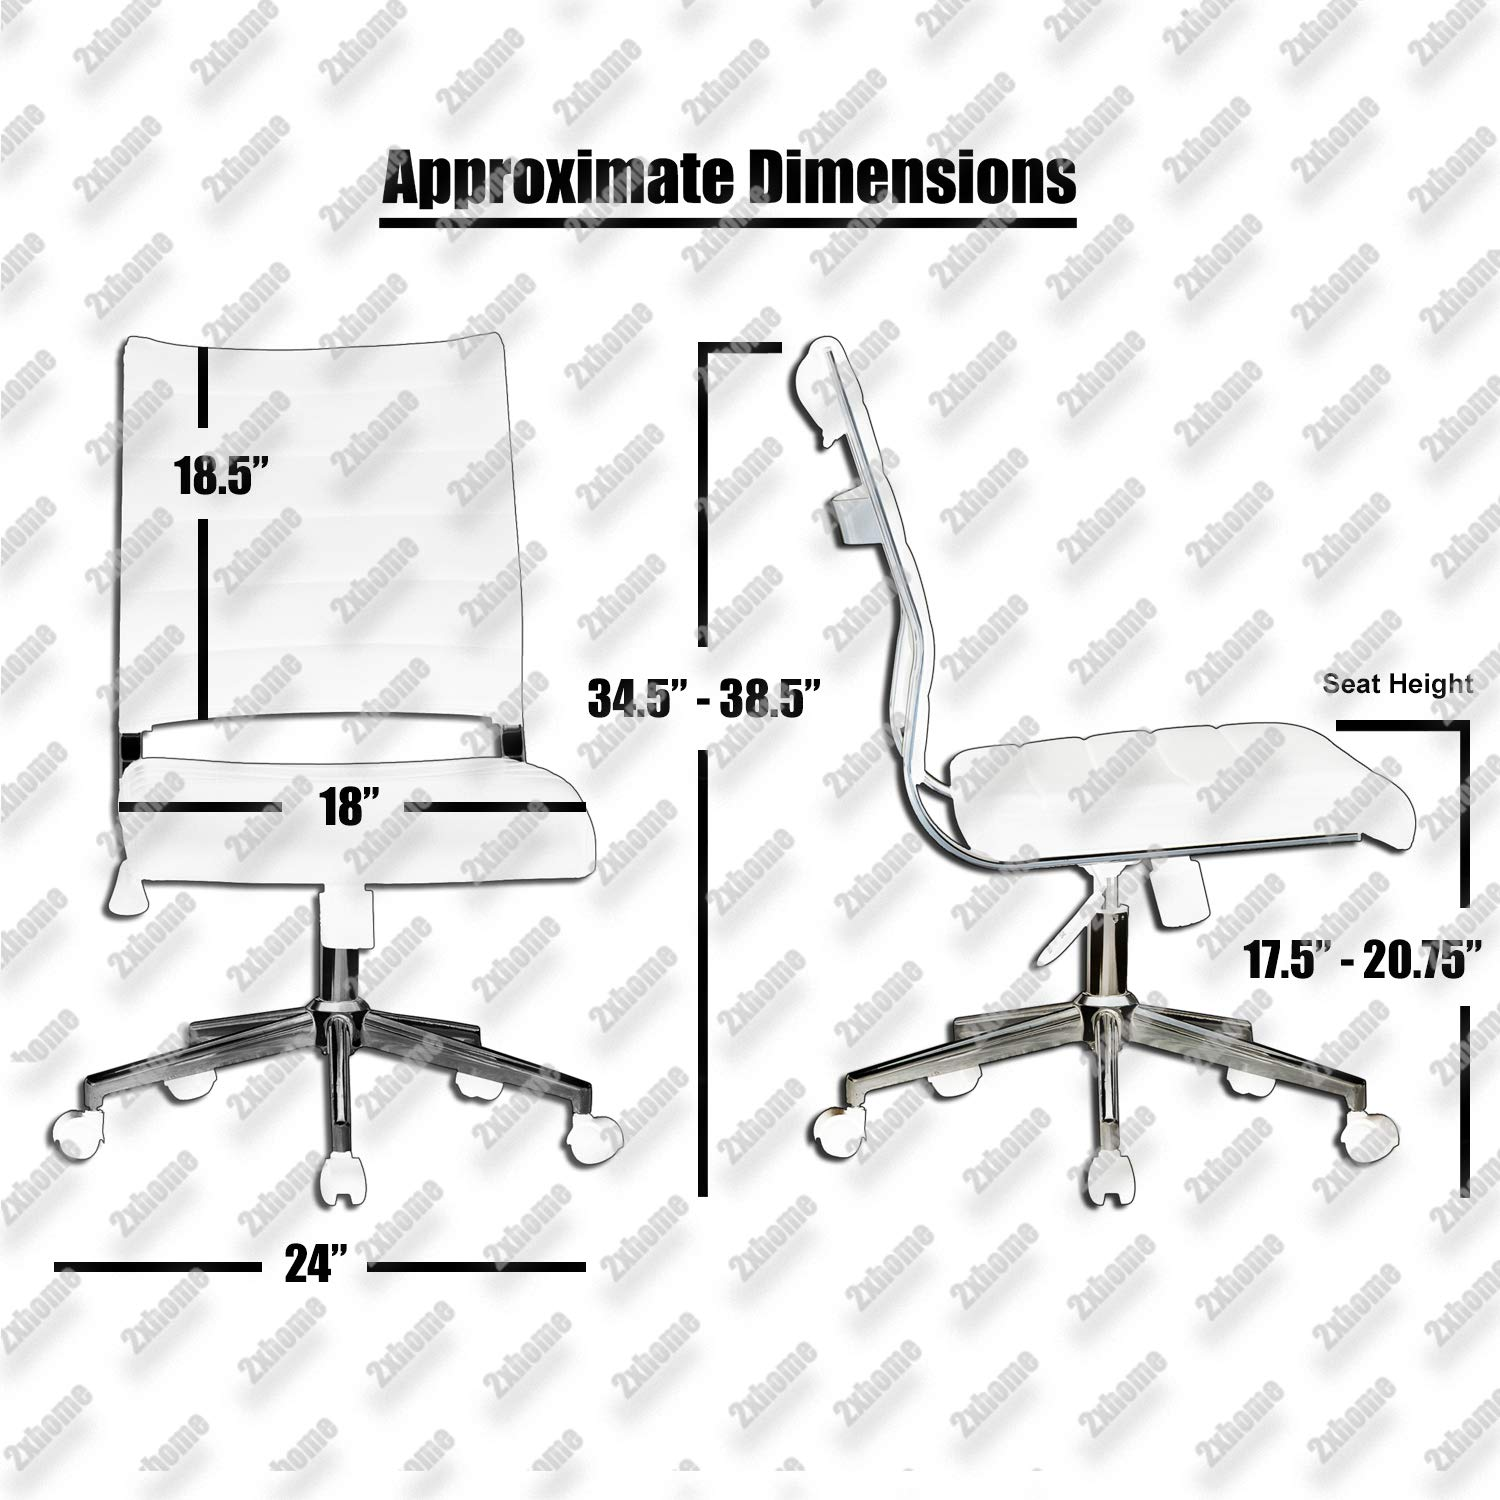 2xhome Modern Ergonomic Executive Mid Back PU Leather No Arms Rest Tilt Adjustable Height Wheels Cushion Lumbar Support Swivel Office Chair Conference Room Home Task Desk Armless Grey